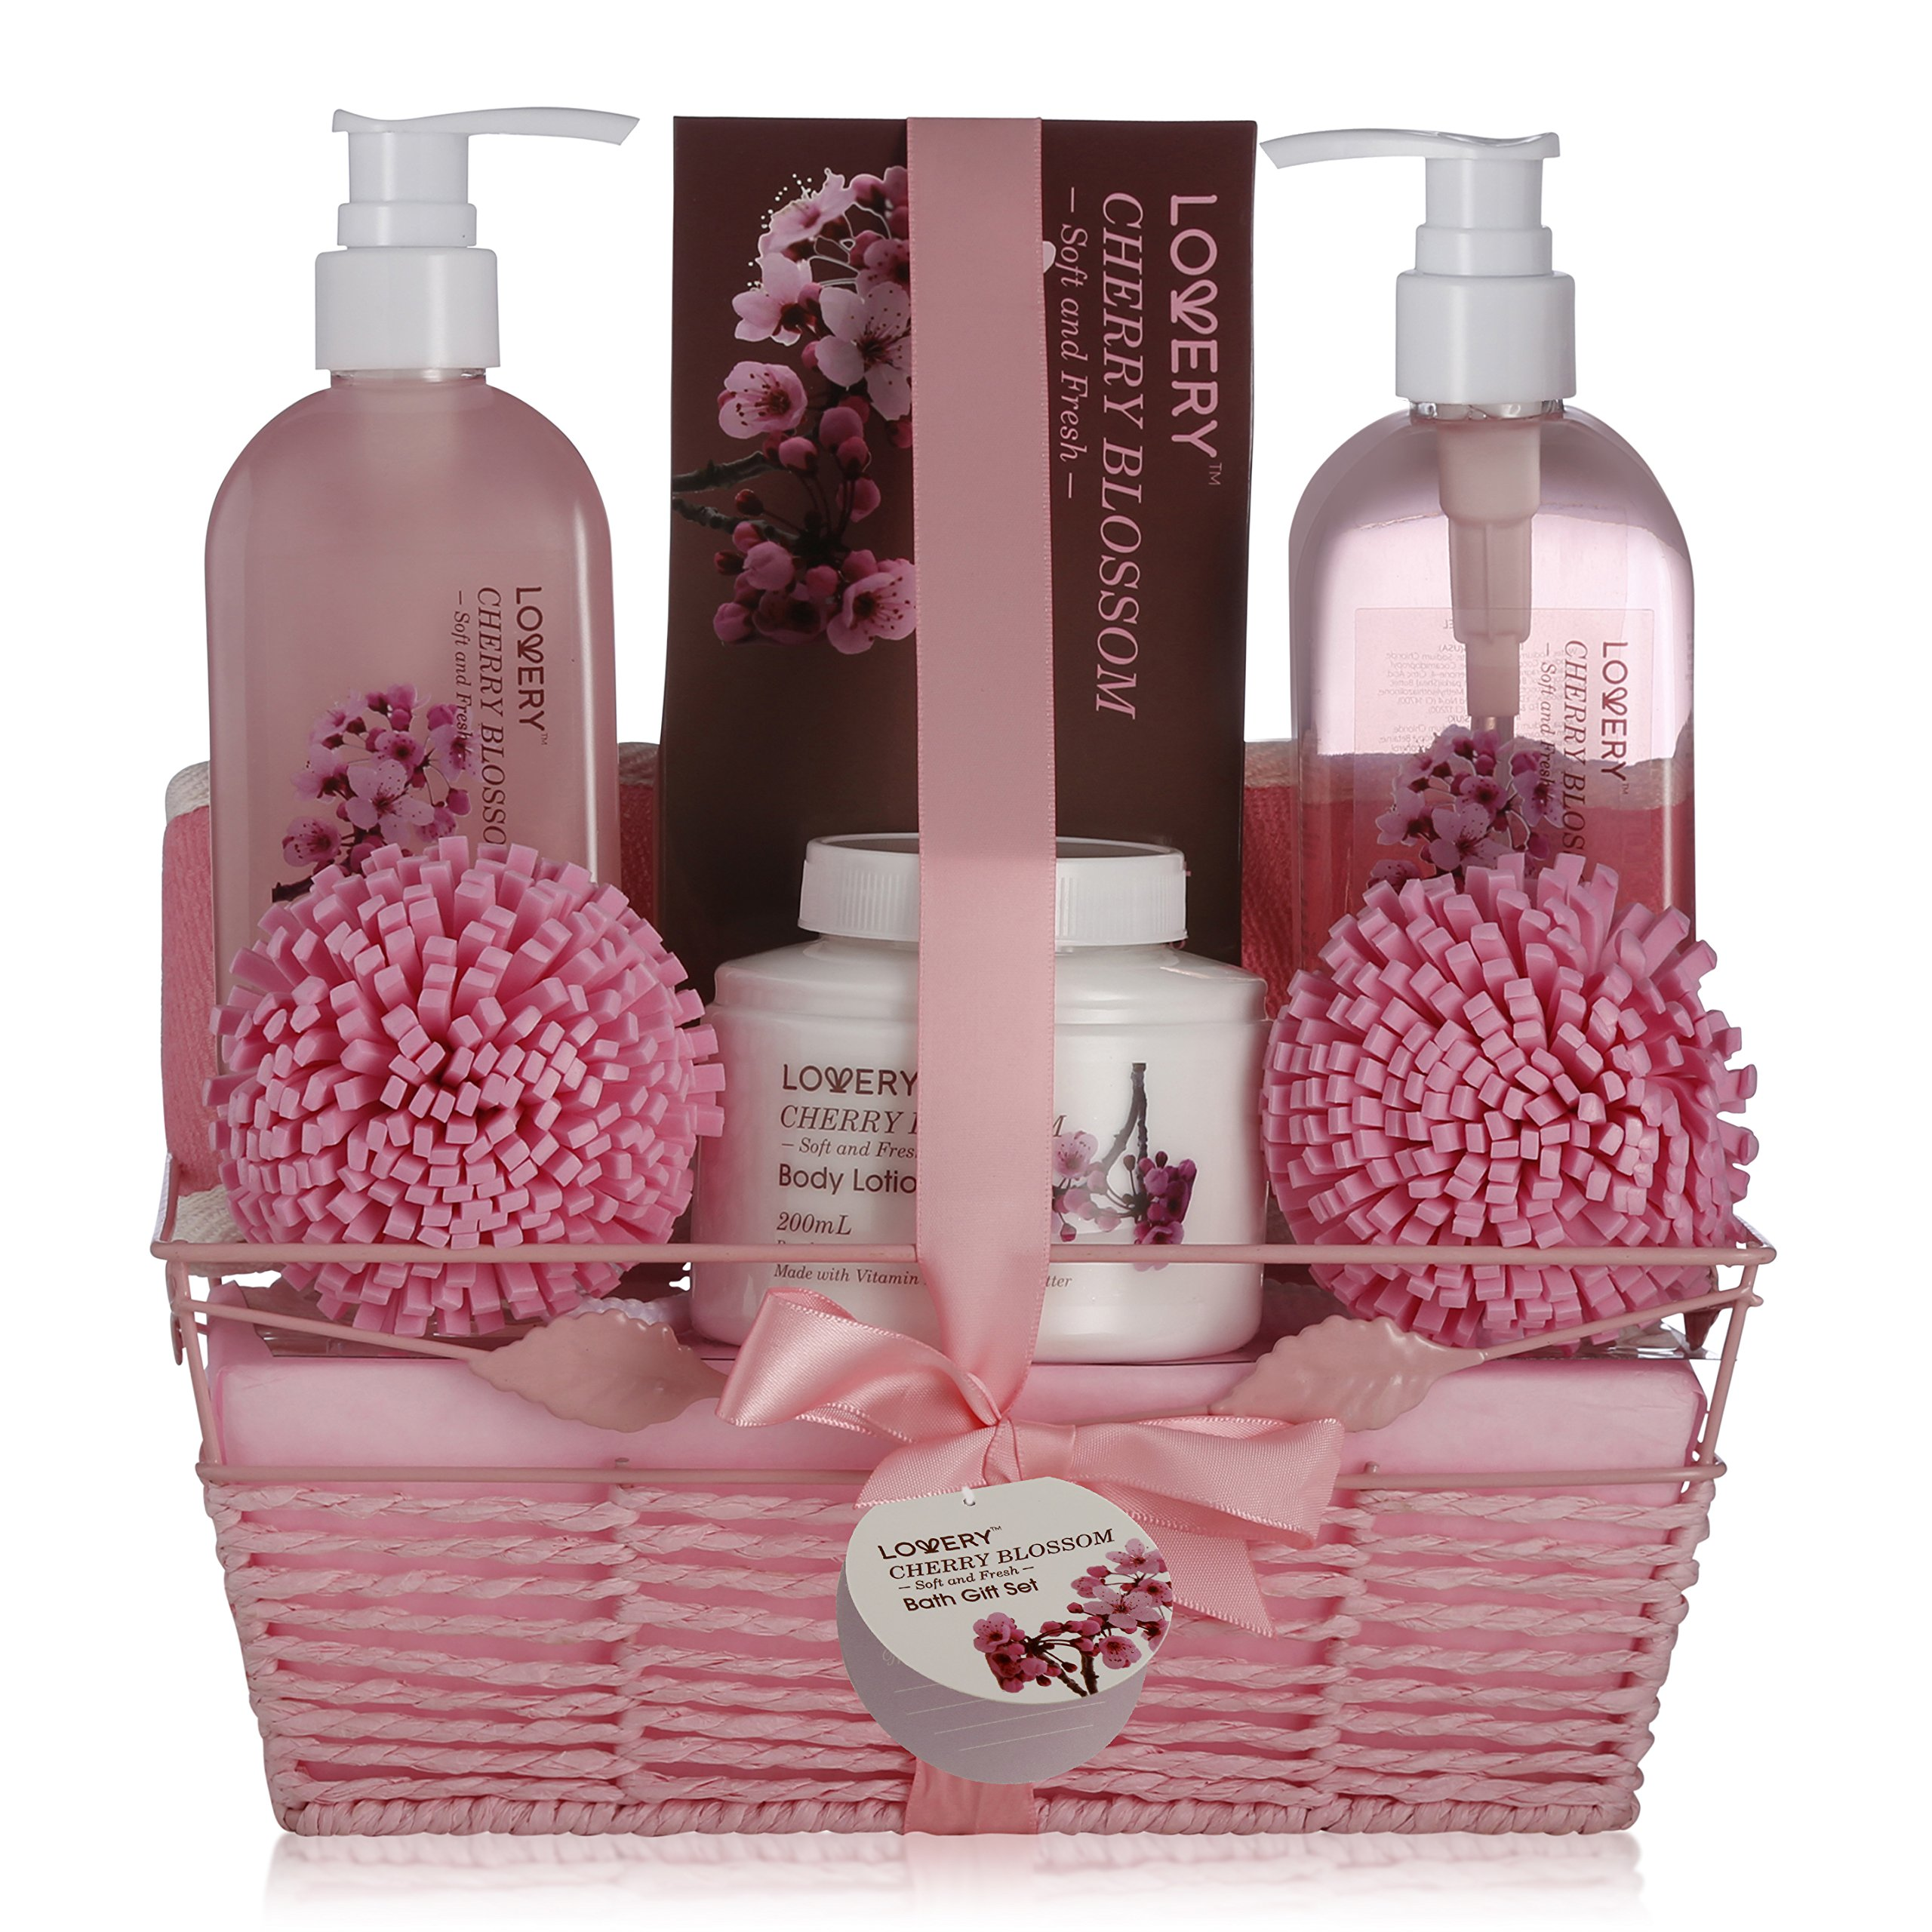 Amazon.com : Home Spa Gift Basket - White Rose & Jasmine - Luxurious ...